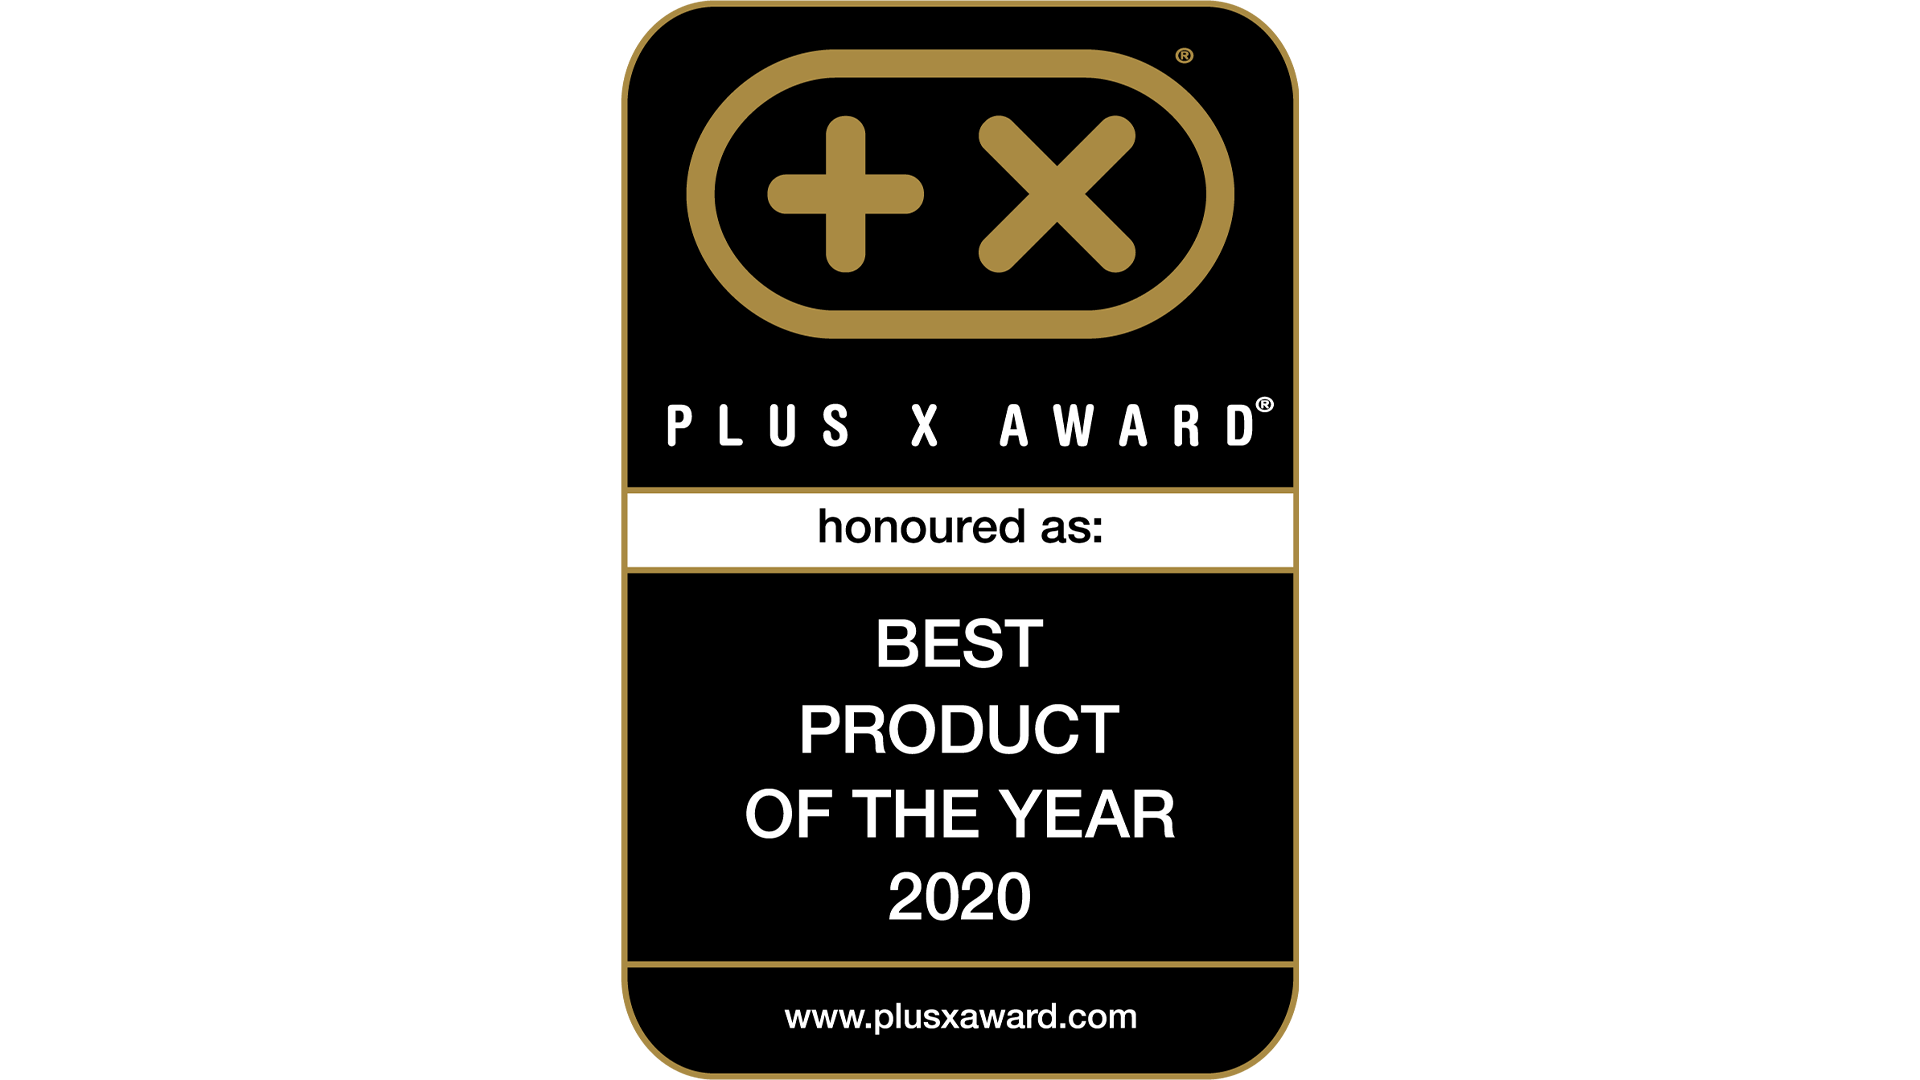 Logo - Plus X Award - Product of the year 2020